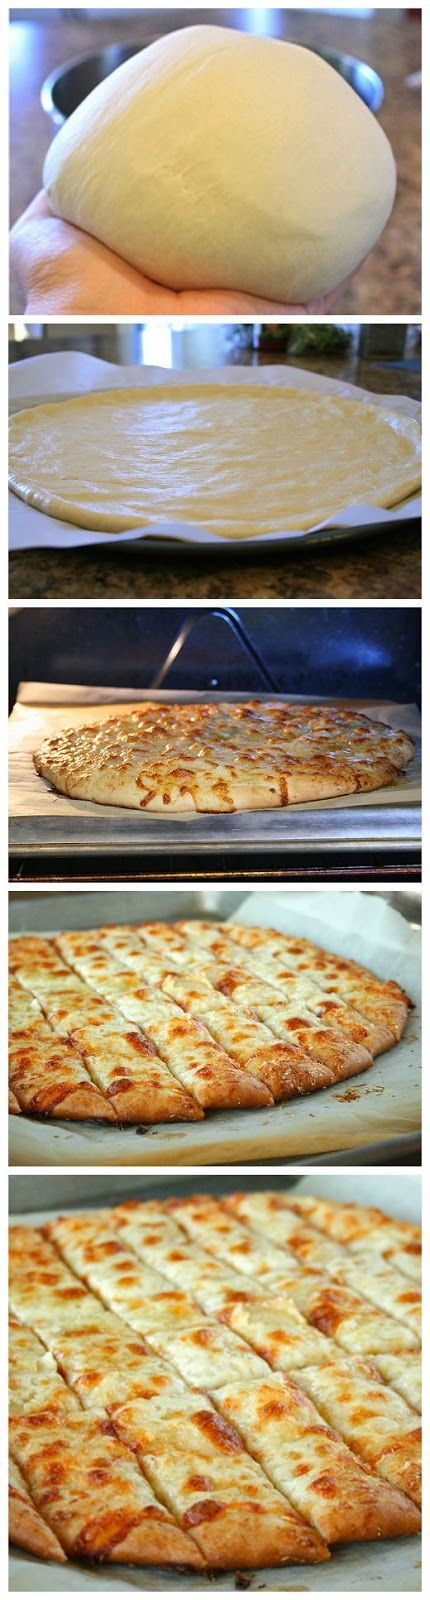 Fail-Proof Pizza Dough and Cheesy Garlic Bread Sticks - GuideKitchen